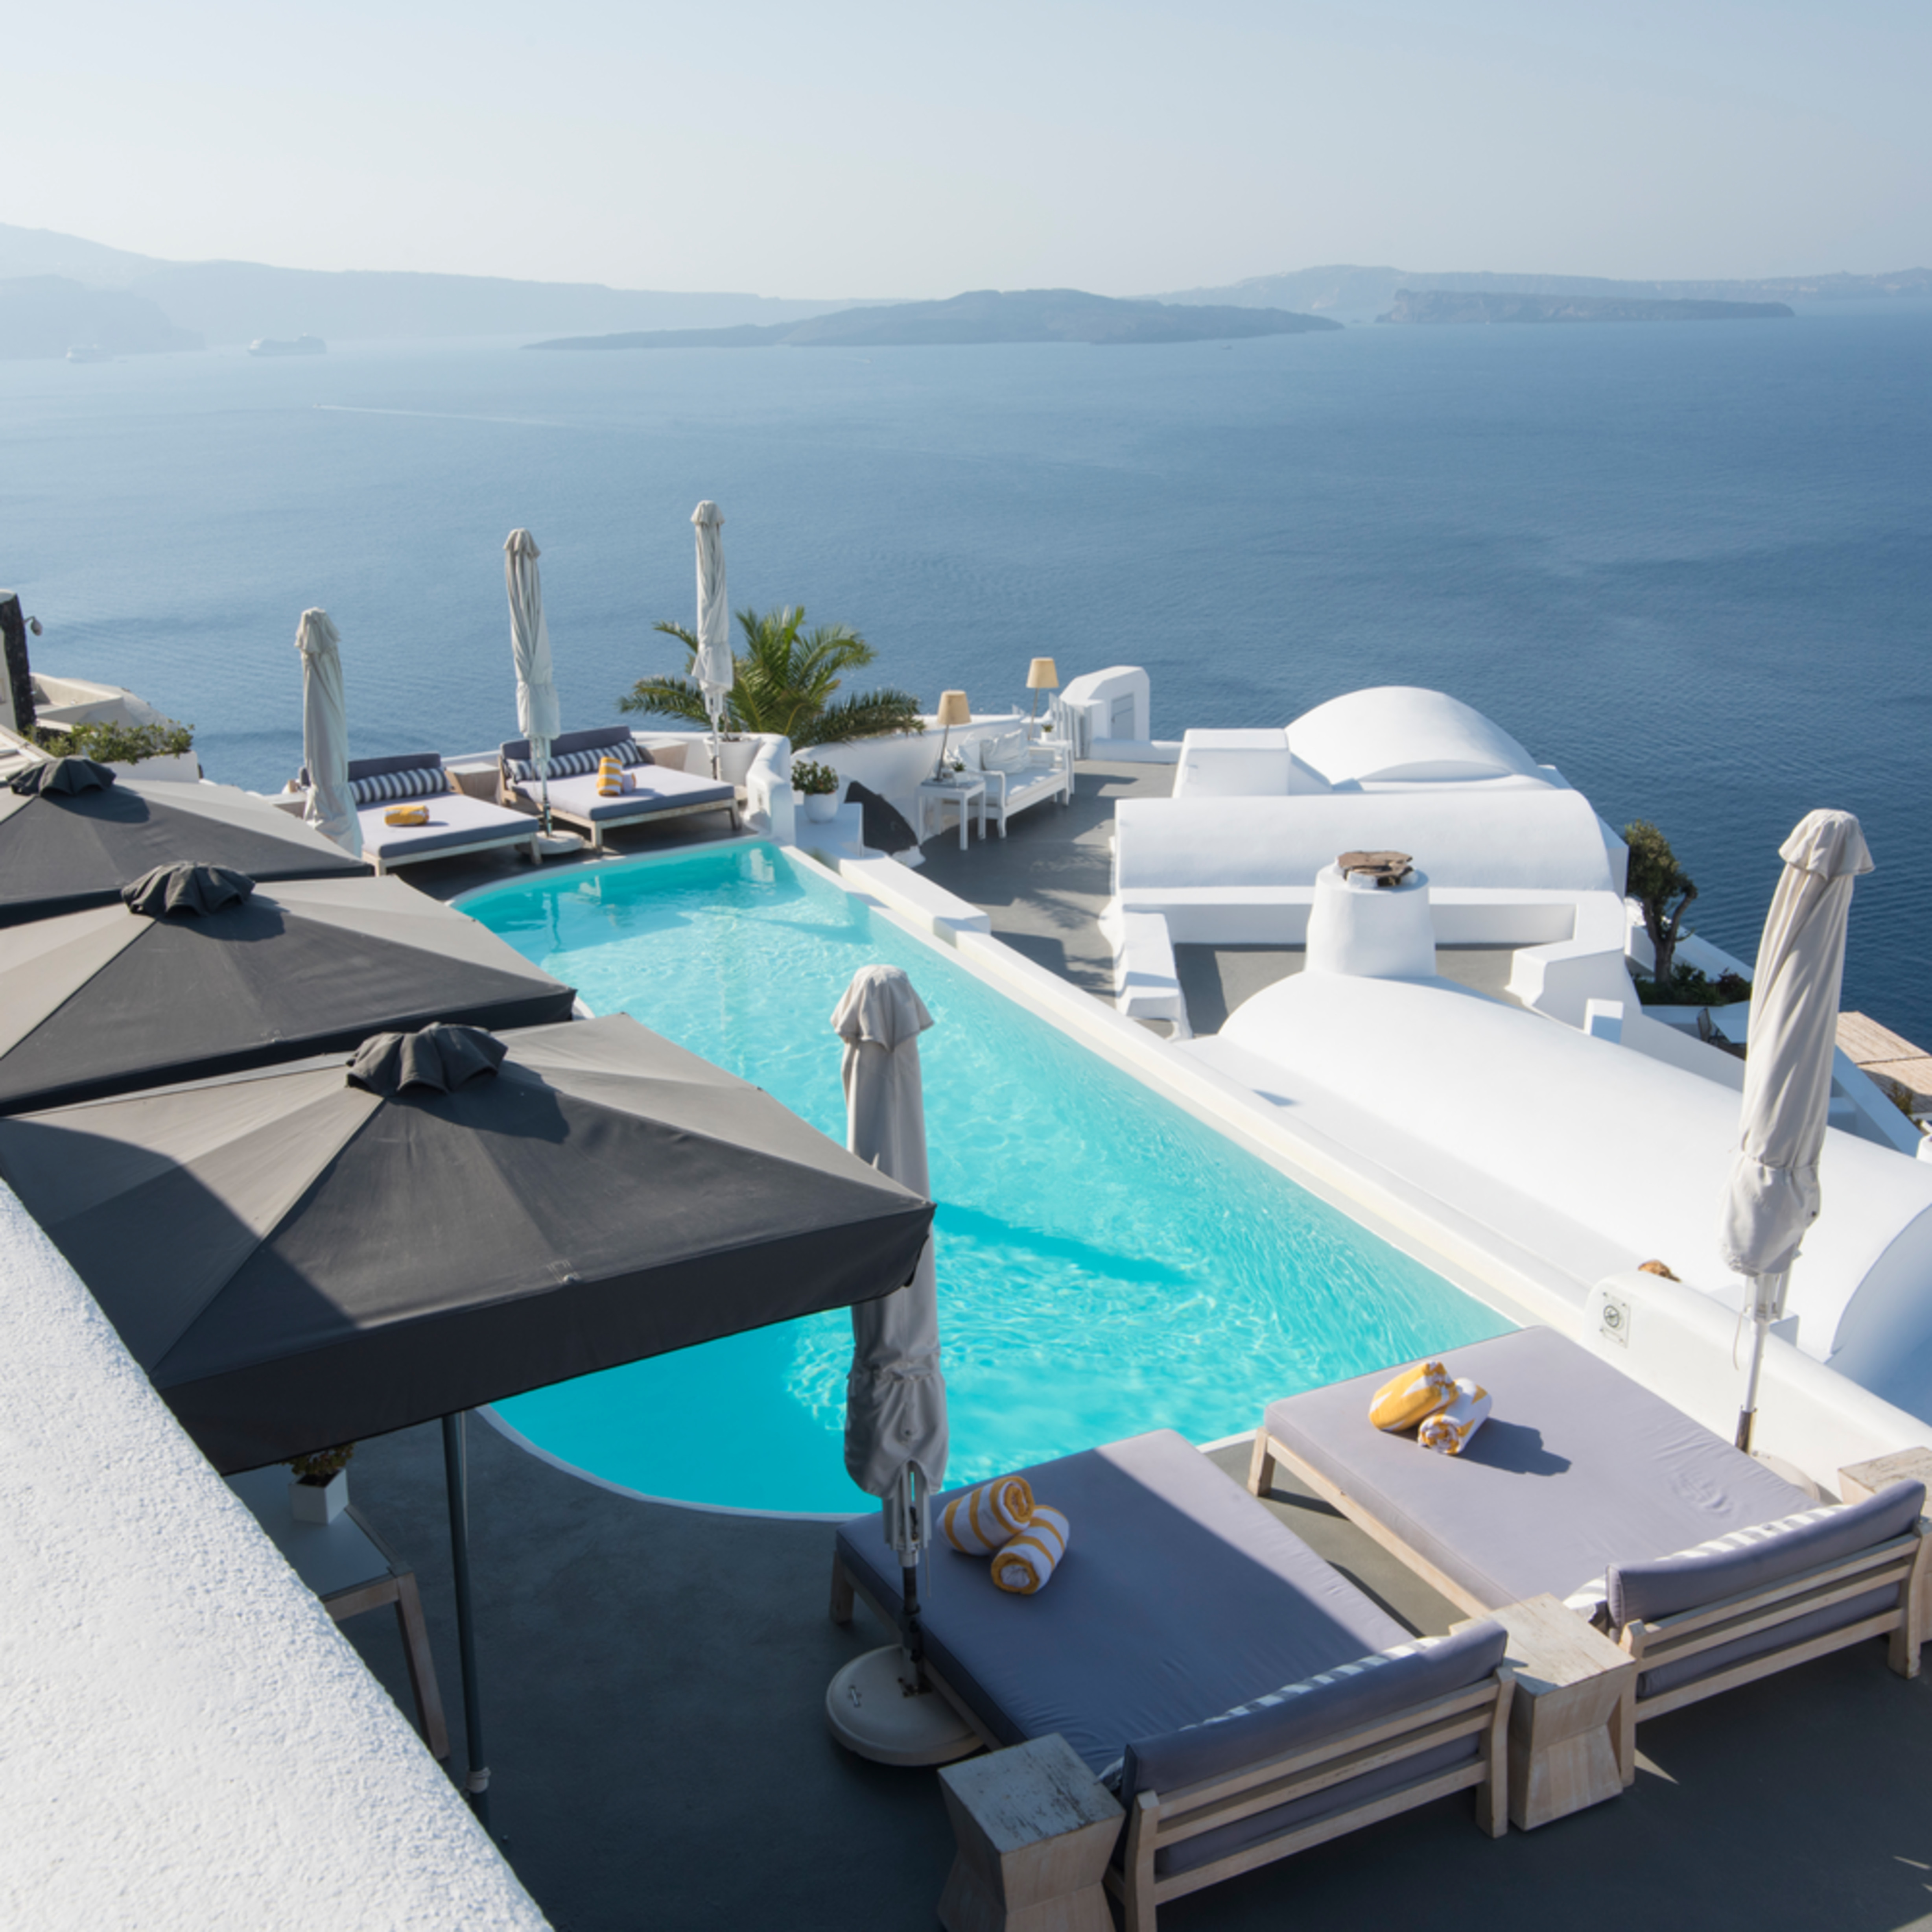 Santorini pool with a view gzcpvb